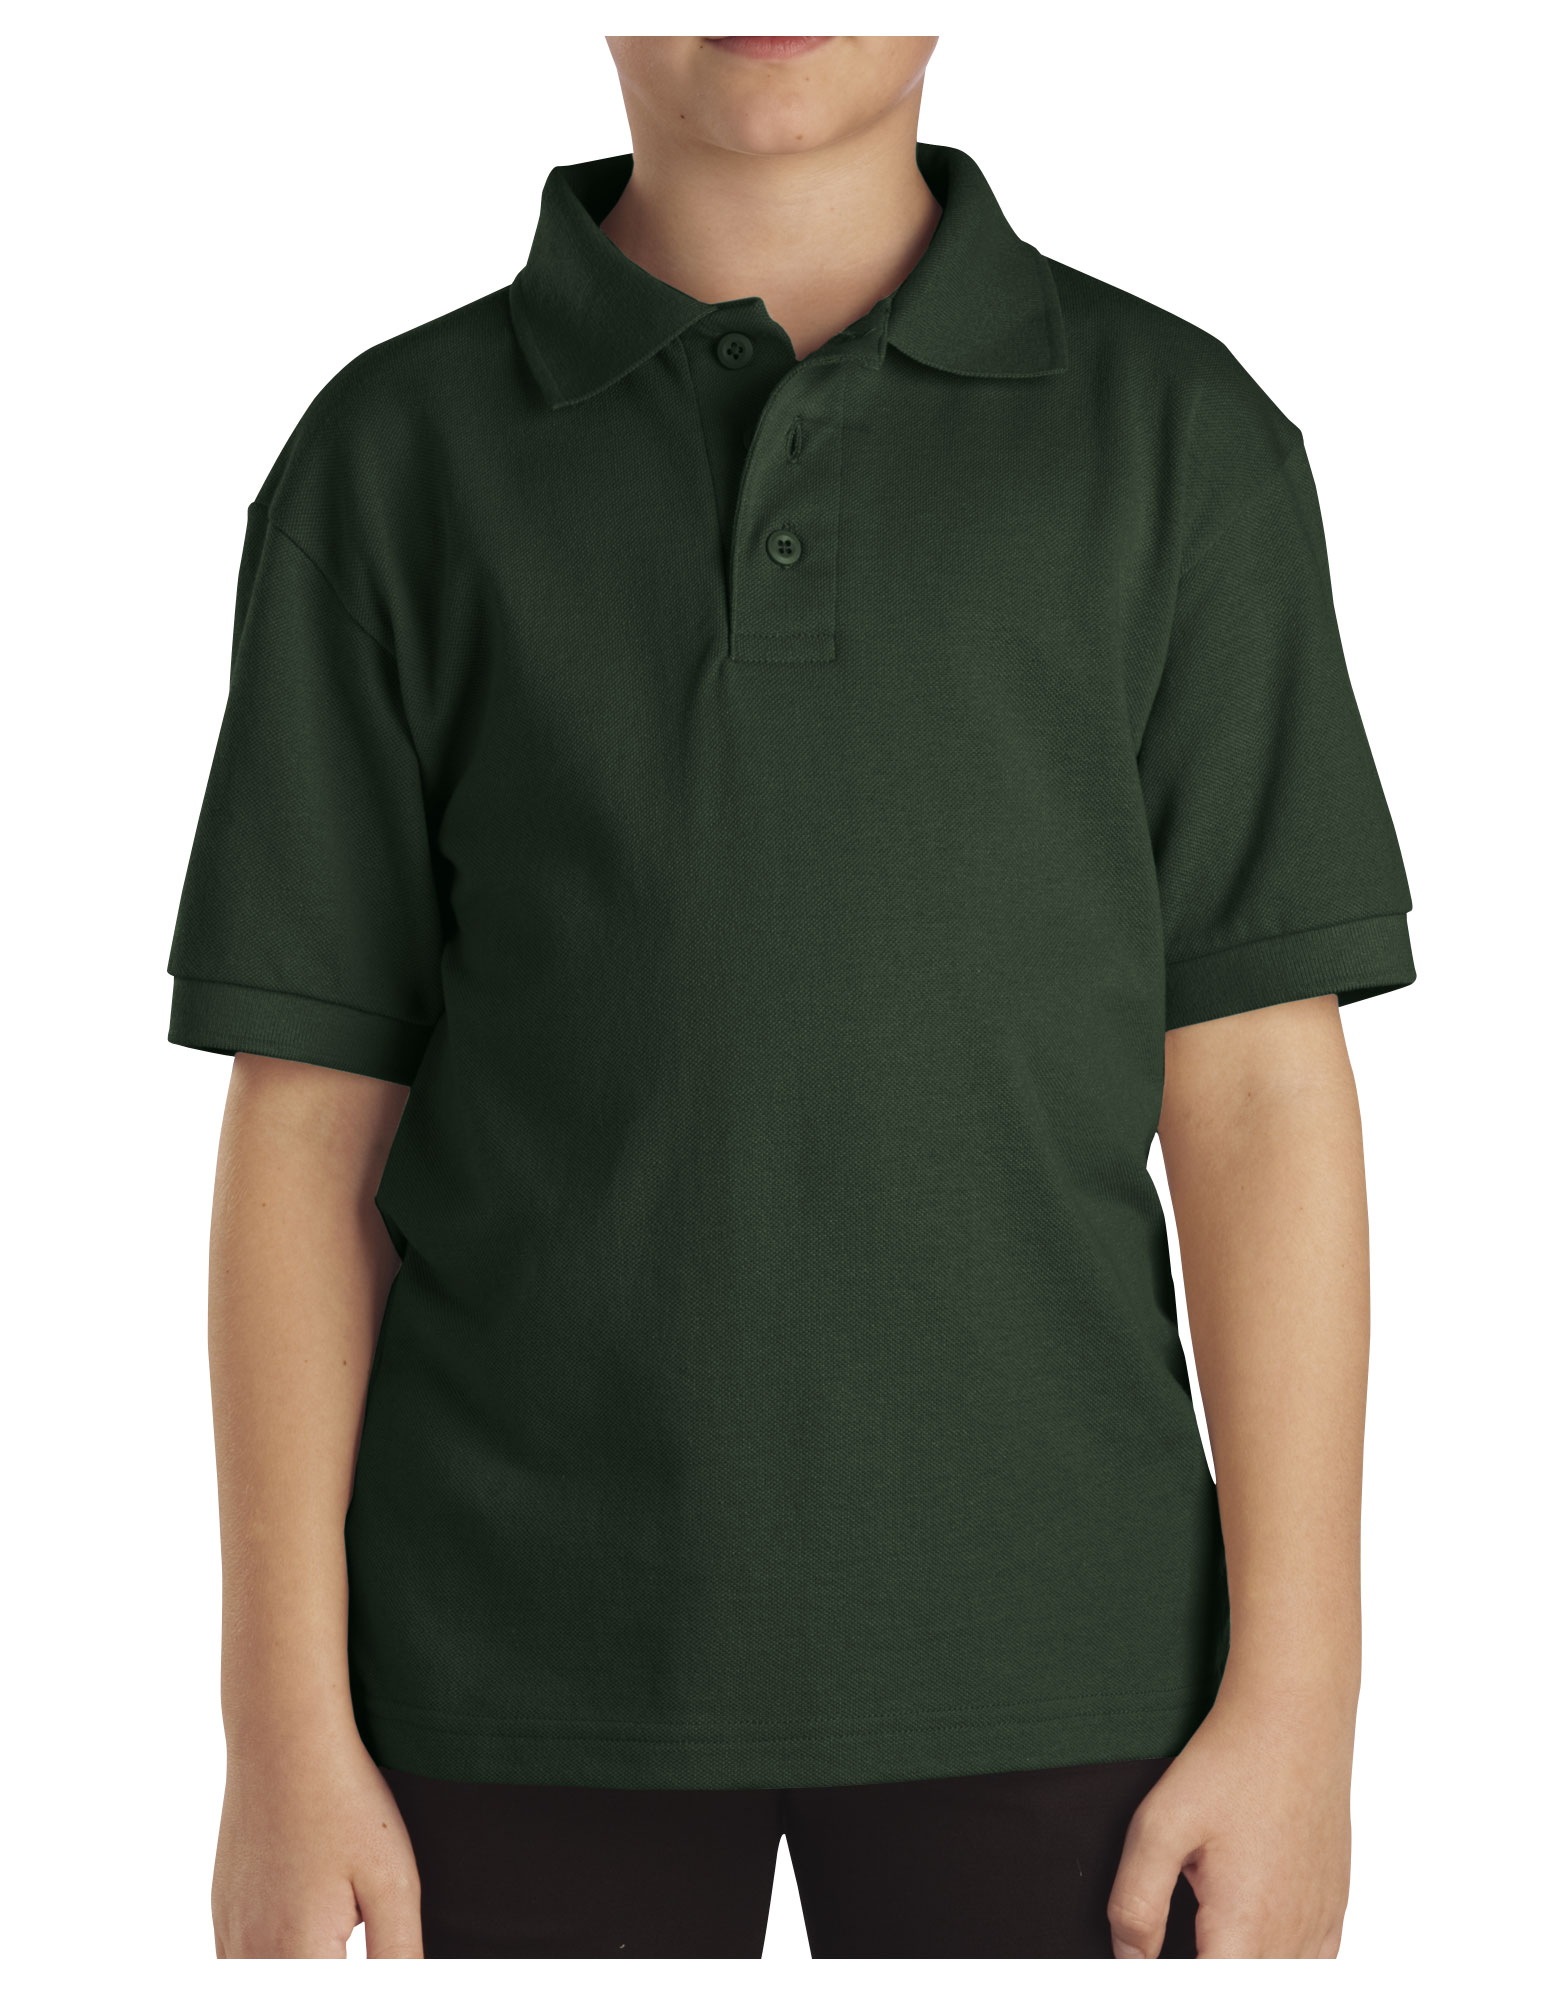 Kids' Short Sleeve Pique Polo Shirt, 4-7 - Hunter Green (GH)